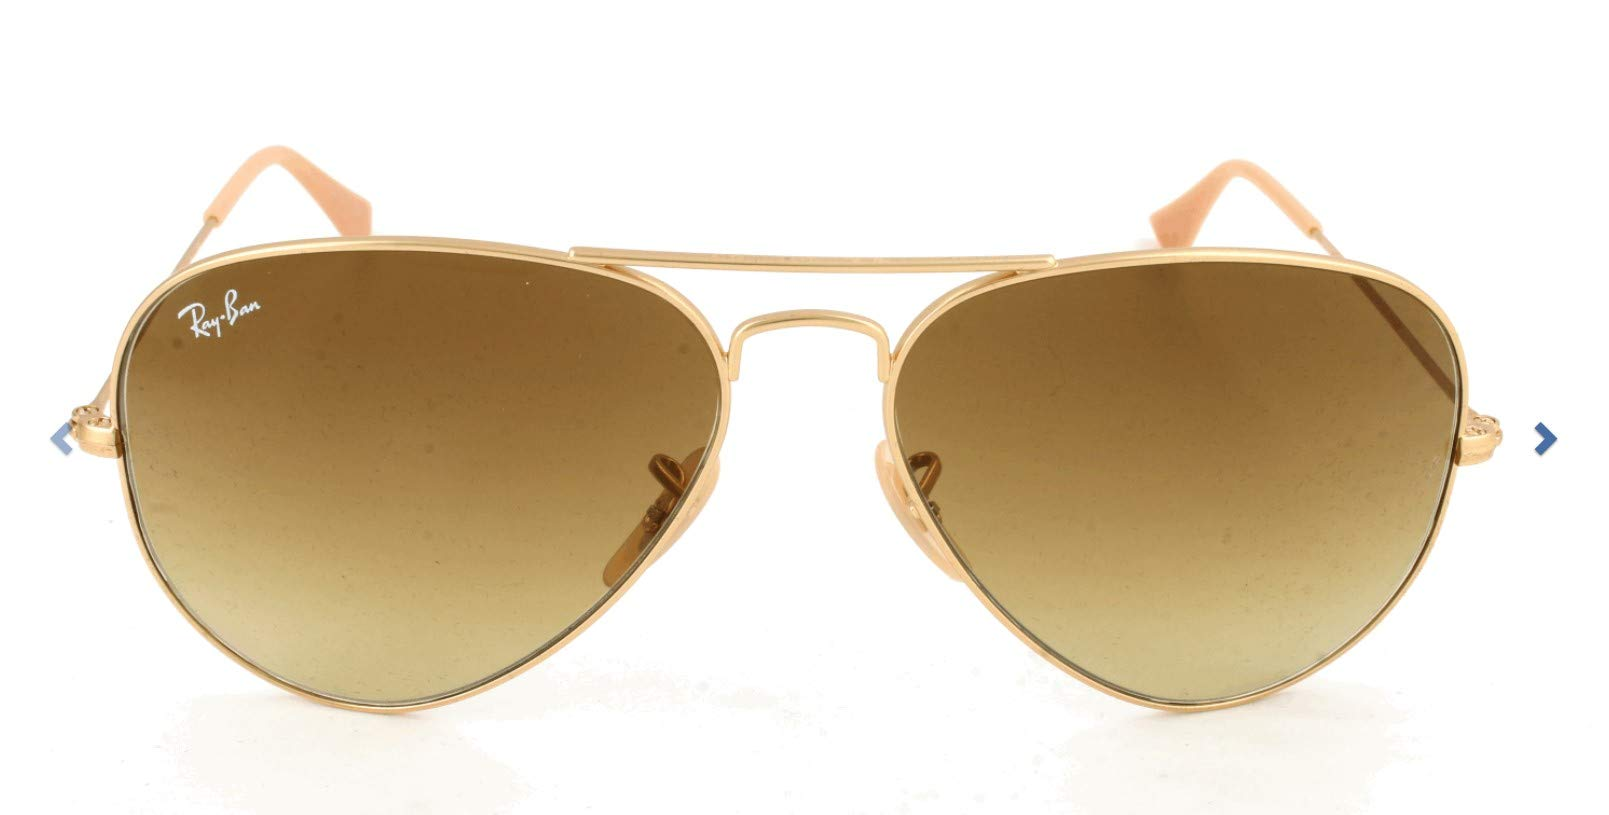 RAY-BAN RB3025 Aviator Large Metal Sunglasses, Gold/Grey Gradient, 62 mm by RAY-BAN